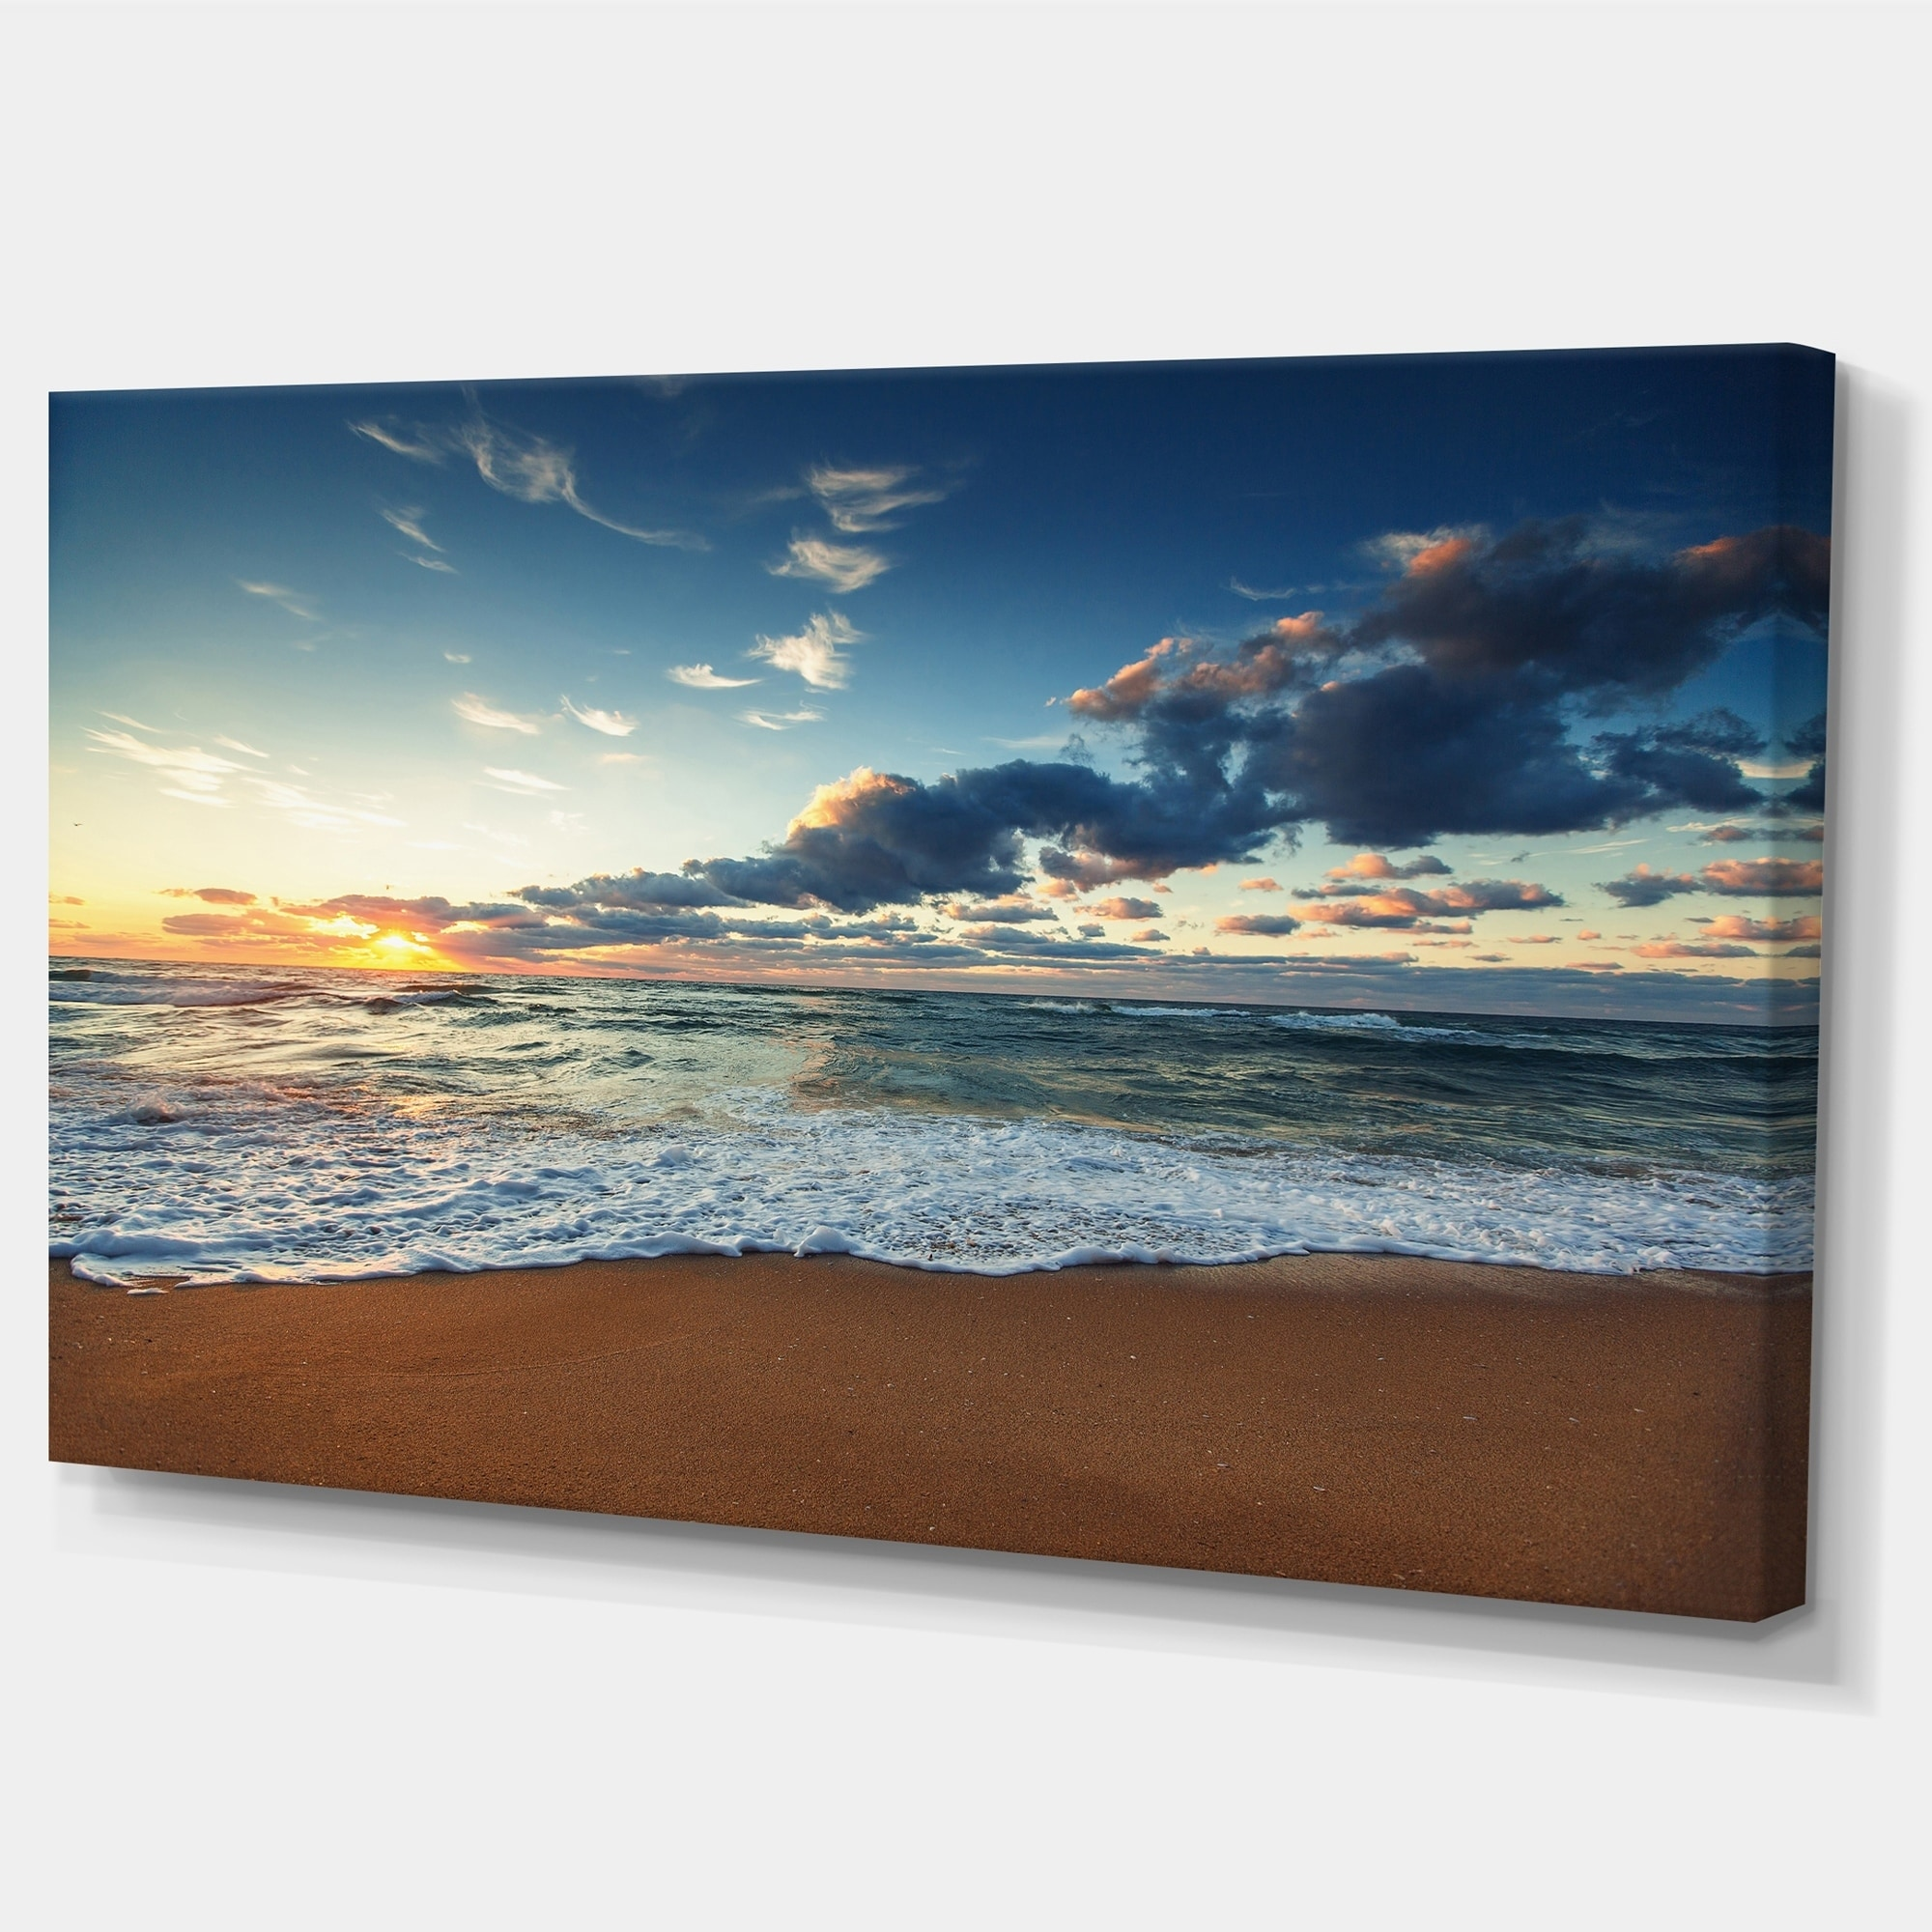 Sunrise-and-Glowing-Waves-in-Ocean-Seashore-Canvas-Wall-Small thumbnail 8